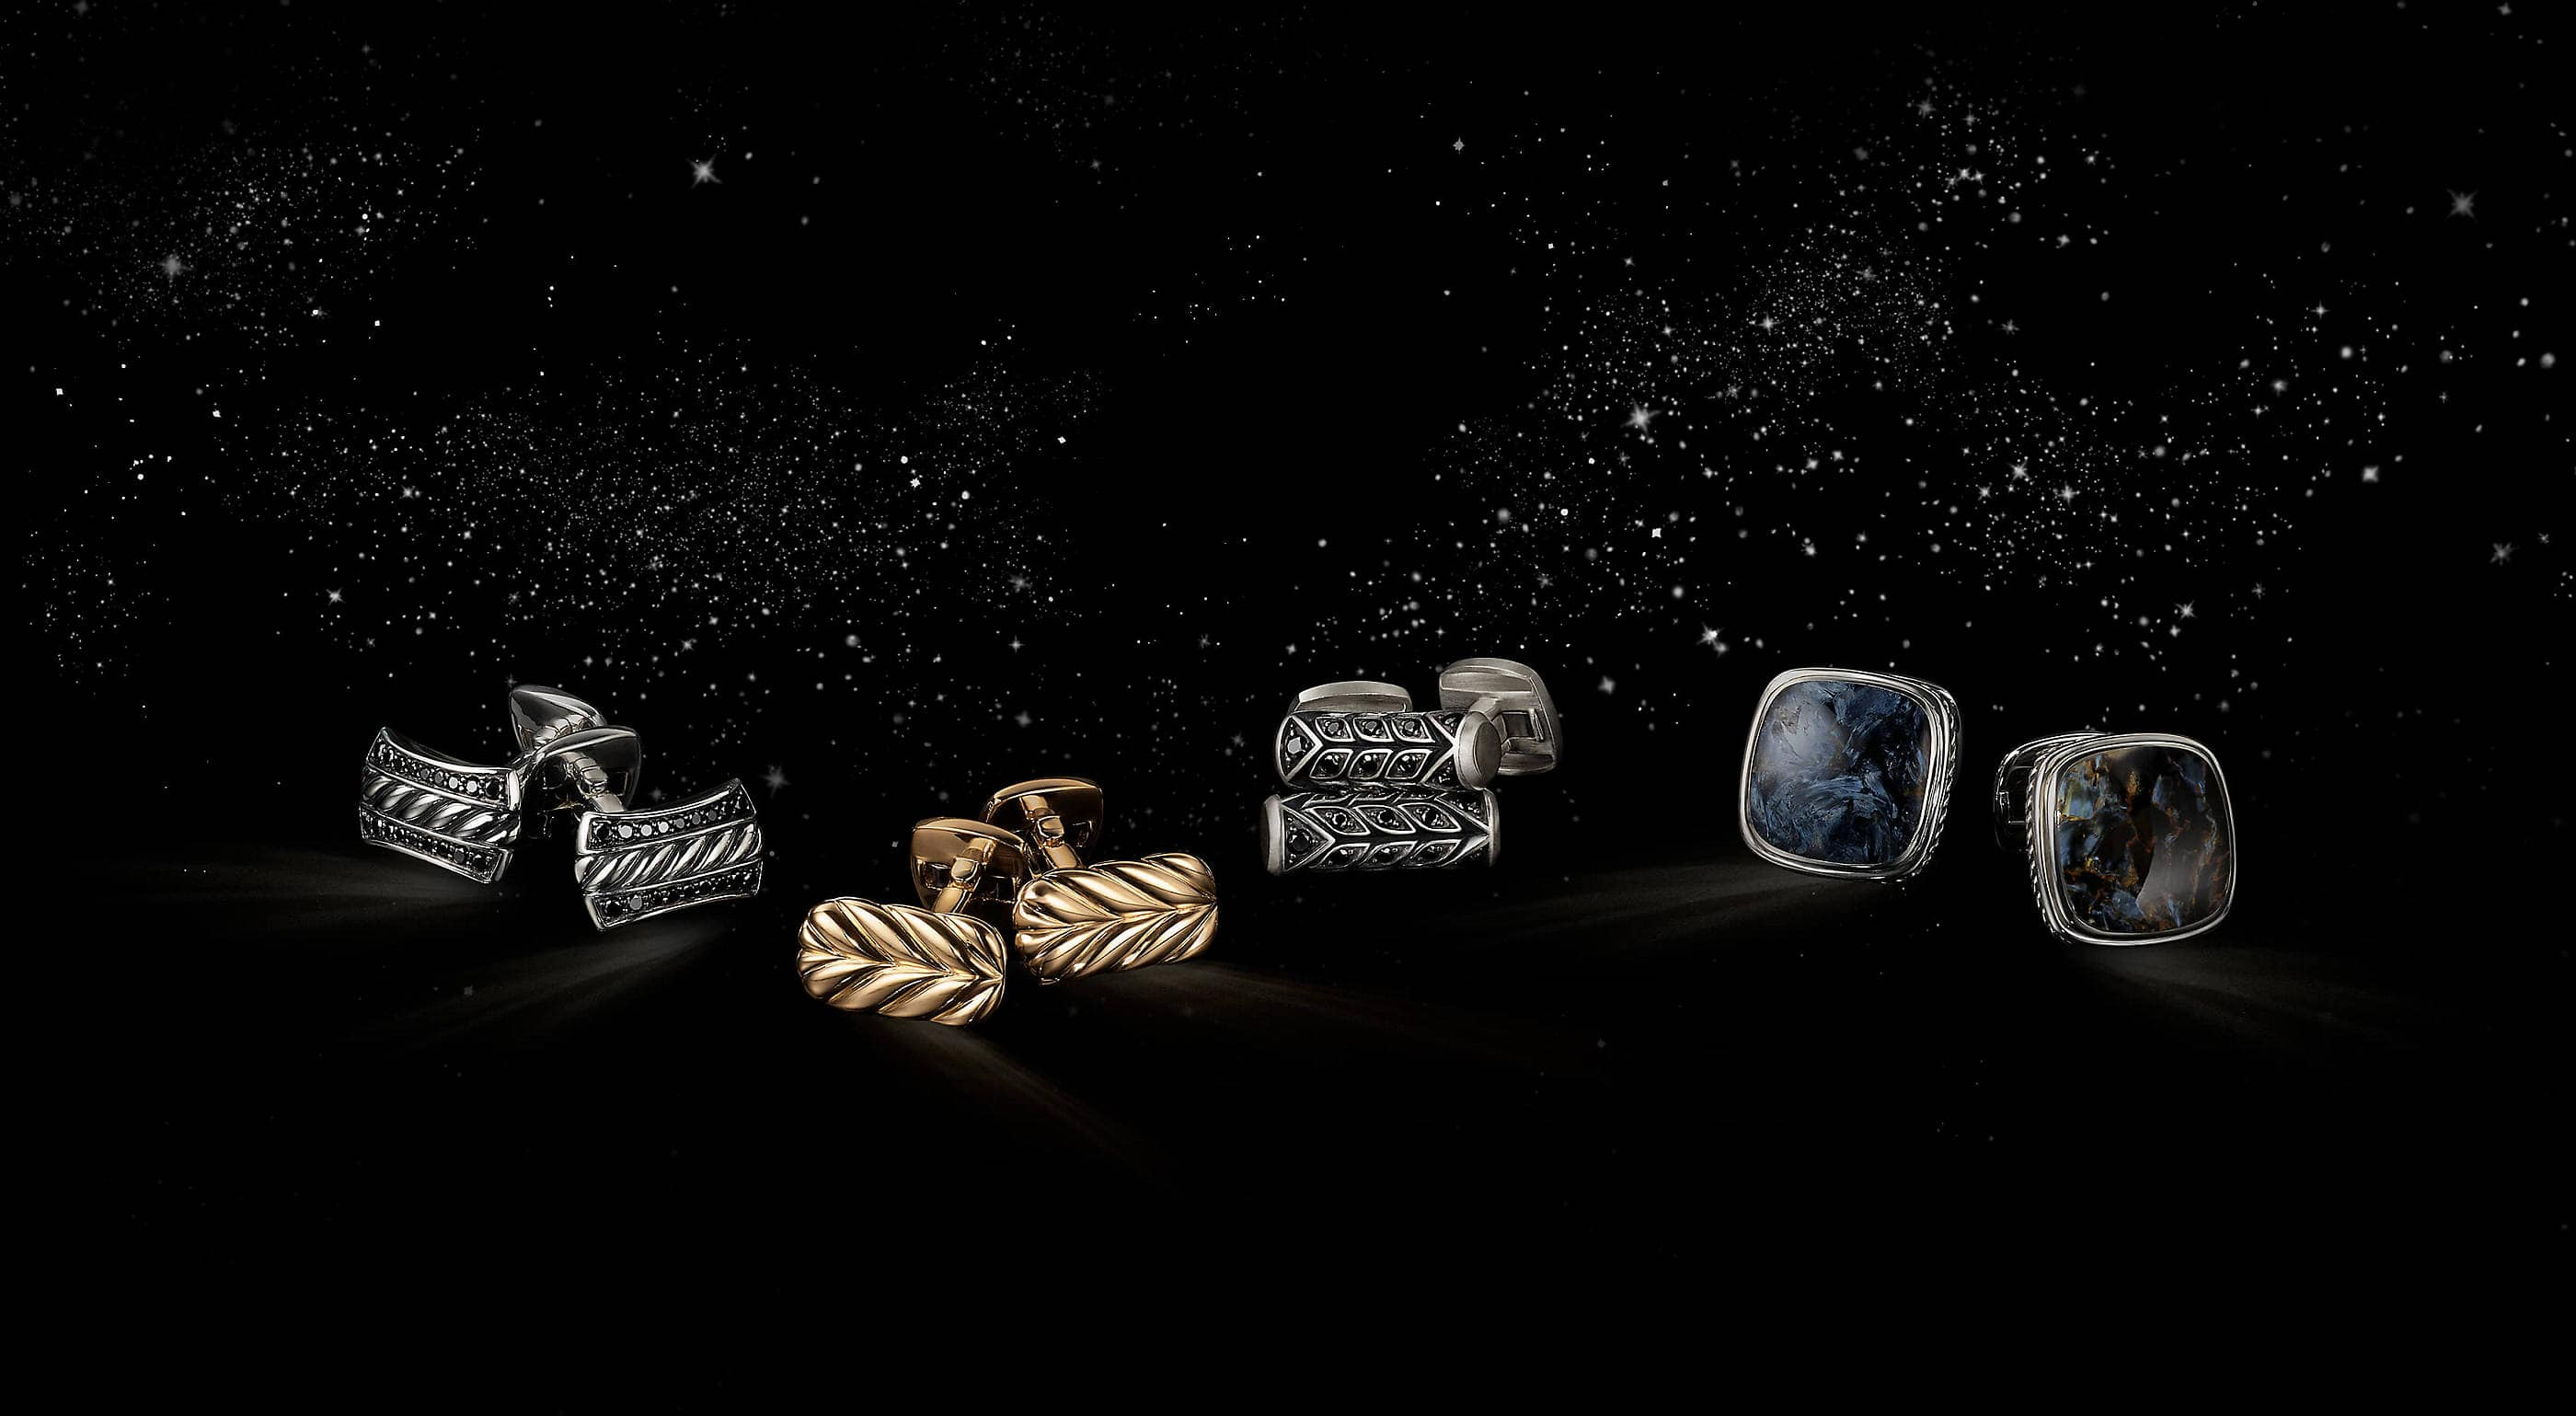 A color photograph shows four pairs of David Yurman men's cufflinks from the Cable, Chevron and Exotic Stone collections floating in a starry night sky. The men's accessories are crafted from sterling silver with pavé black diamonds, 18K yellow gold or sterling silver with pietersite.